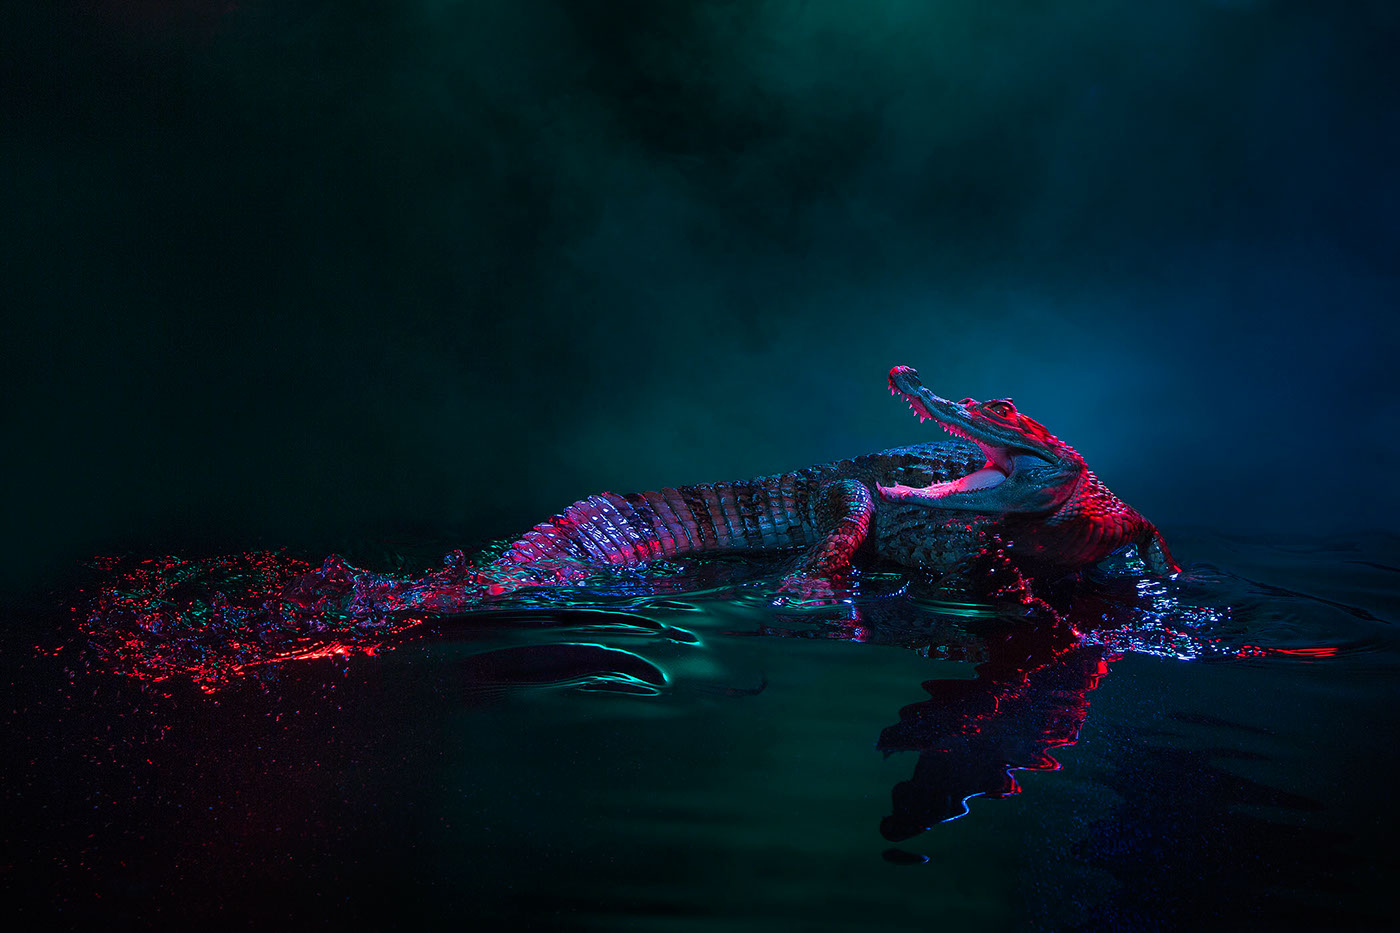 crocodile,caiman,animal,lectures,Animal lecture, lighting,profoto,smoke,colour,color,motion,Andrew McGibbon,London,studio